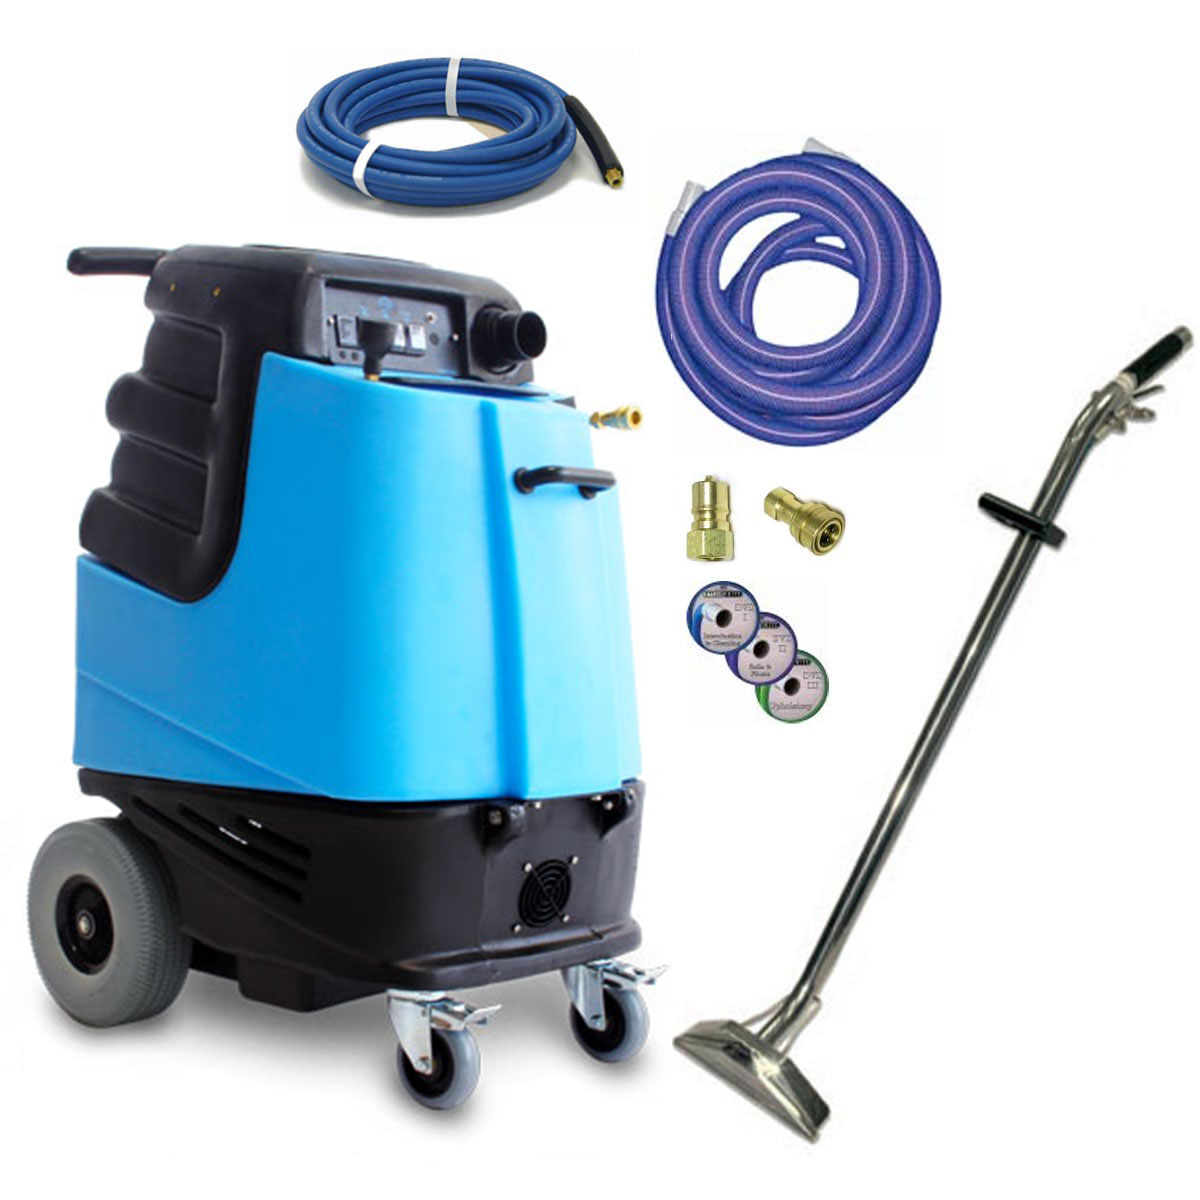 Brand New Mytee 1000DX-200 Duel 3 Stage Vacs 220 PSI Pump Single Cord